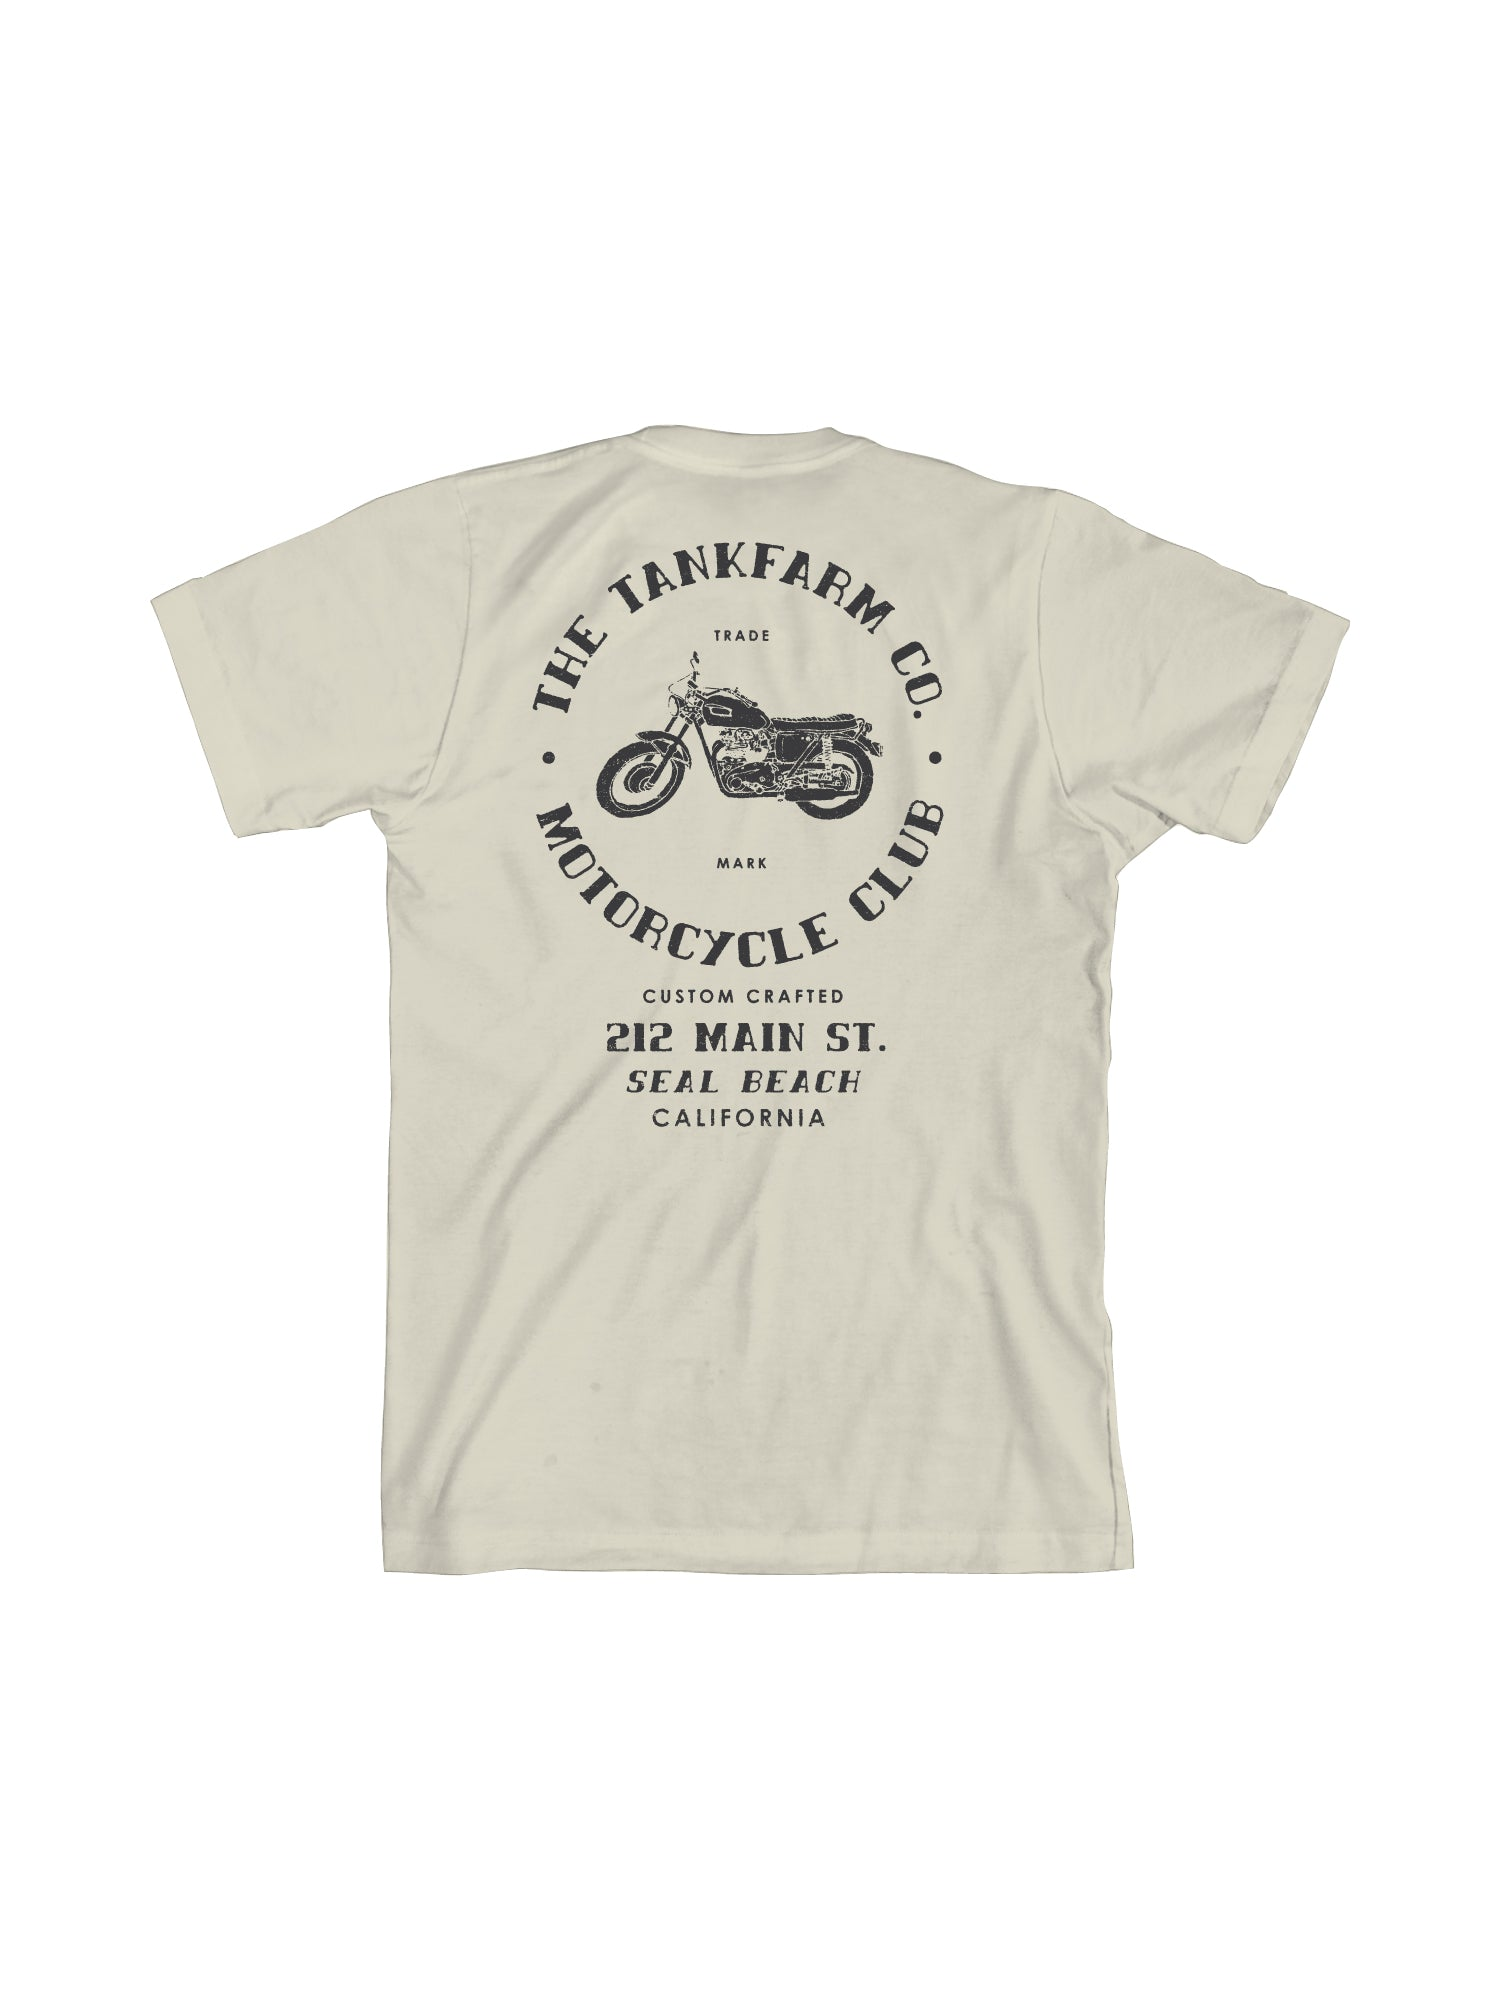 TF MOTOR CO - VINTAGE WHITE